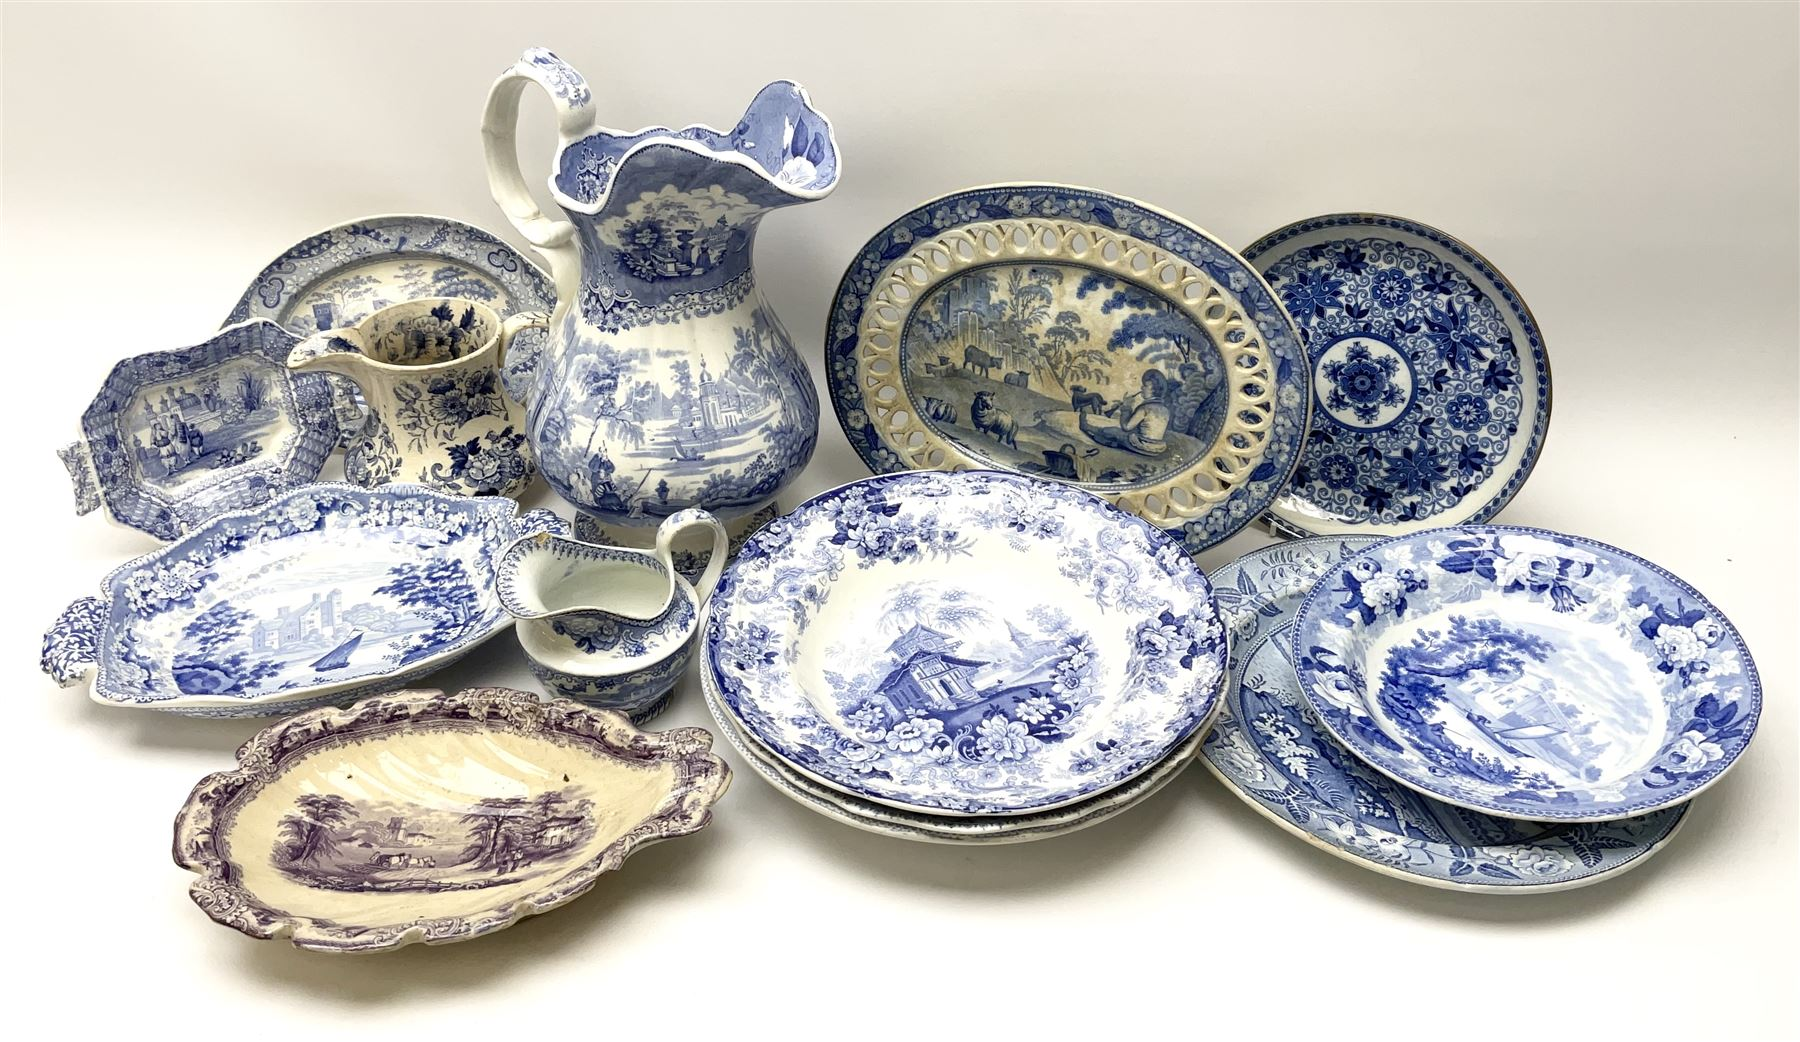 A group of 19th century blue and white transfer printed pottery